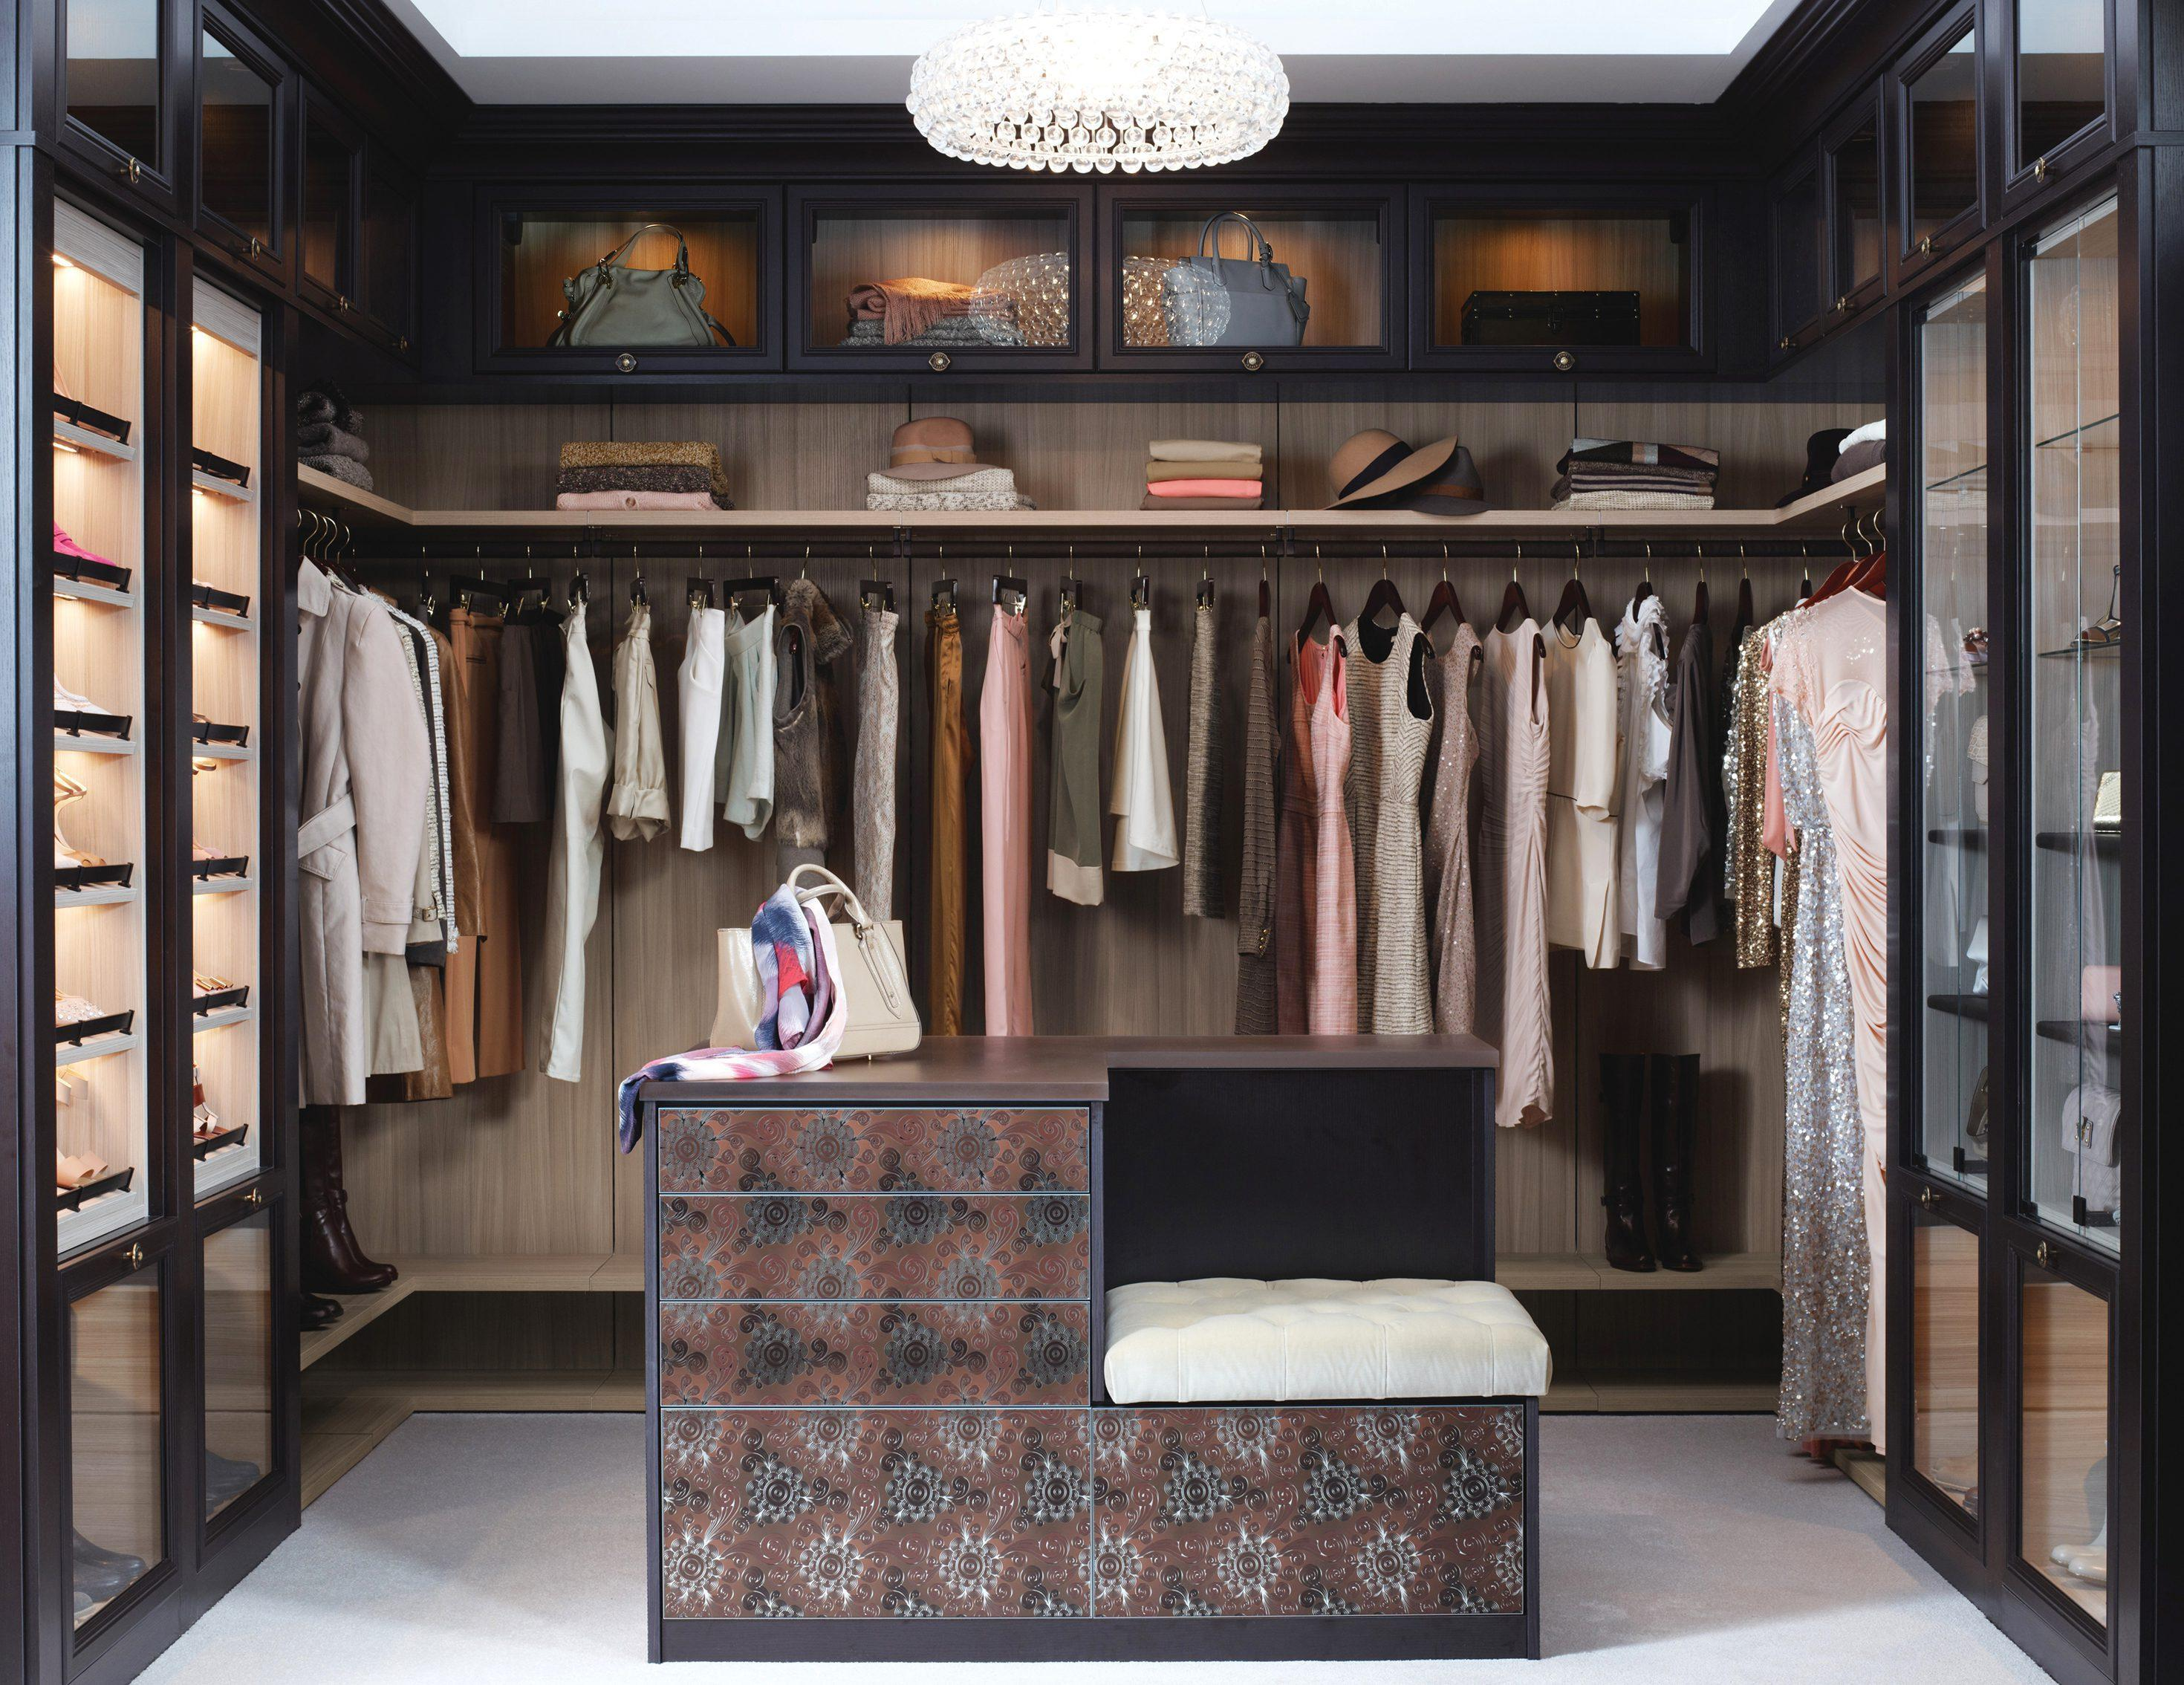 Charmant THREE STEPS TO A SUPERIOR CLOSET ORGANIZER